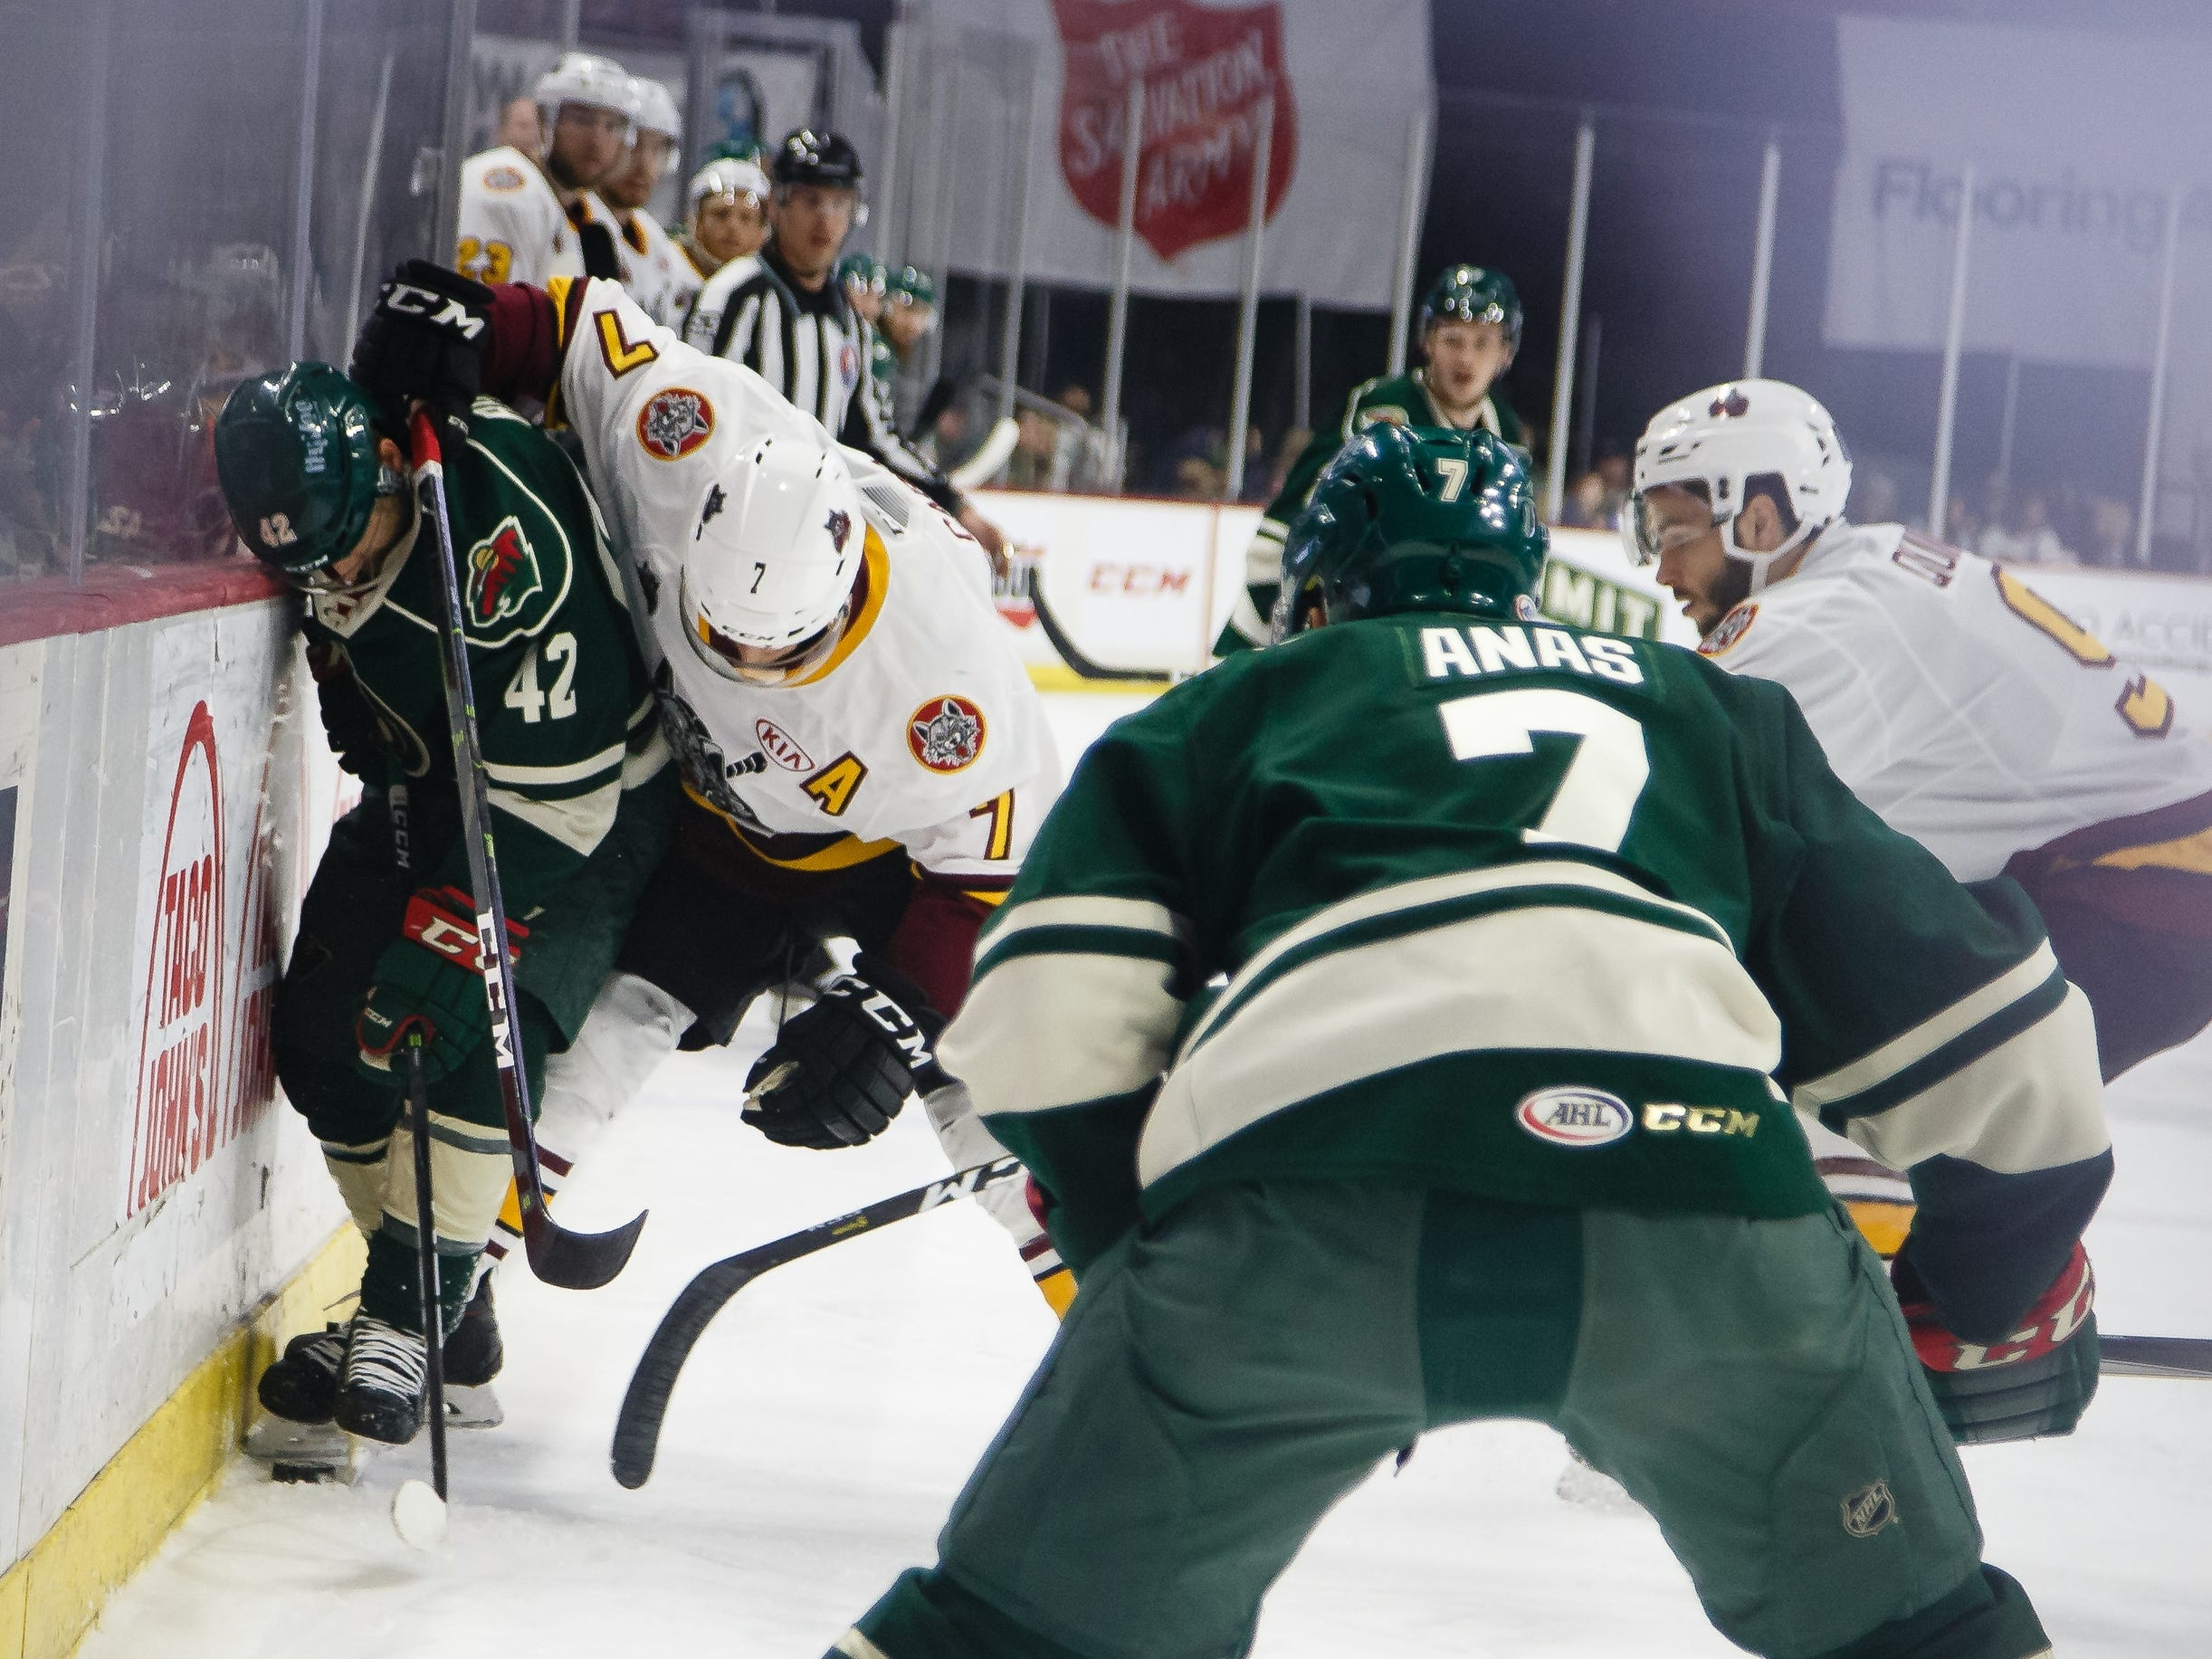 The Iowa Wild's Kyle Rau, left, fights for the puck with the Chicago Wolves Daniel Carr during their Calder Cup playoff hockey game against the Chicago Wolves on Friday, May 10, 2019, in Des Moines.